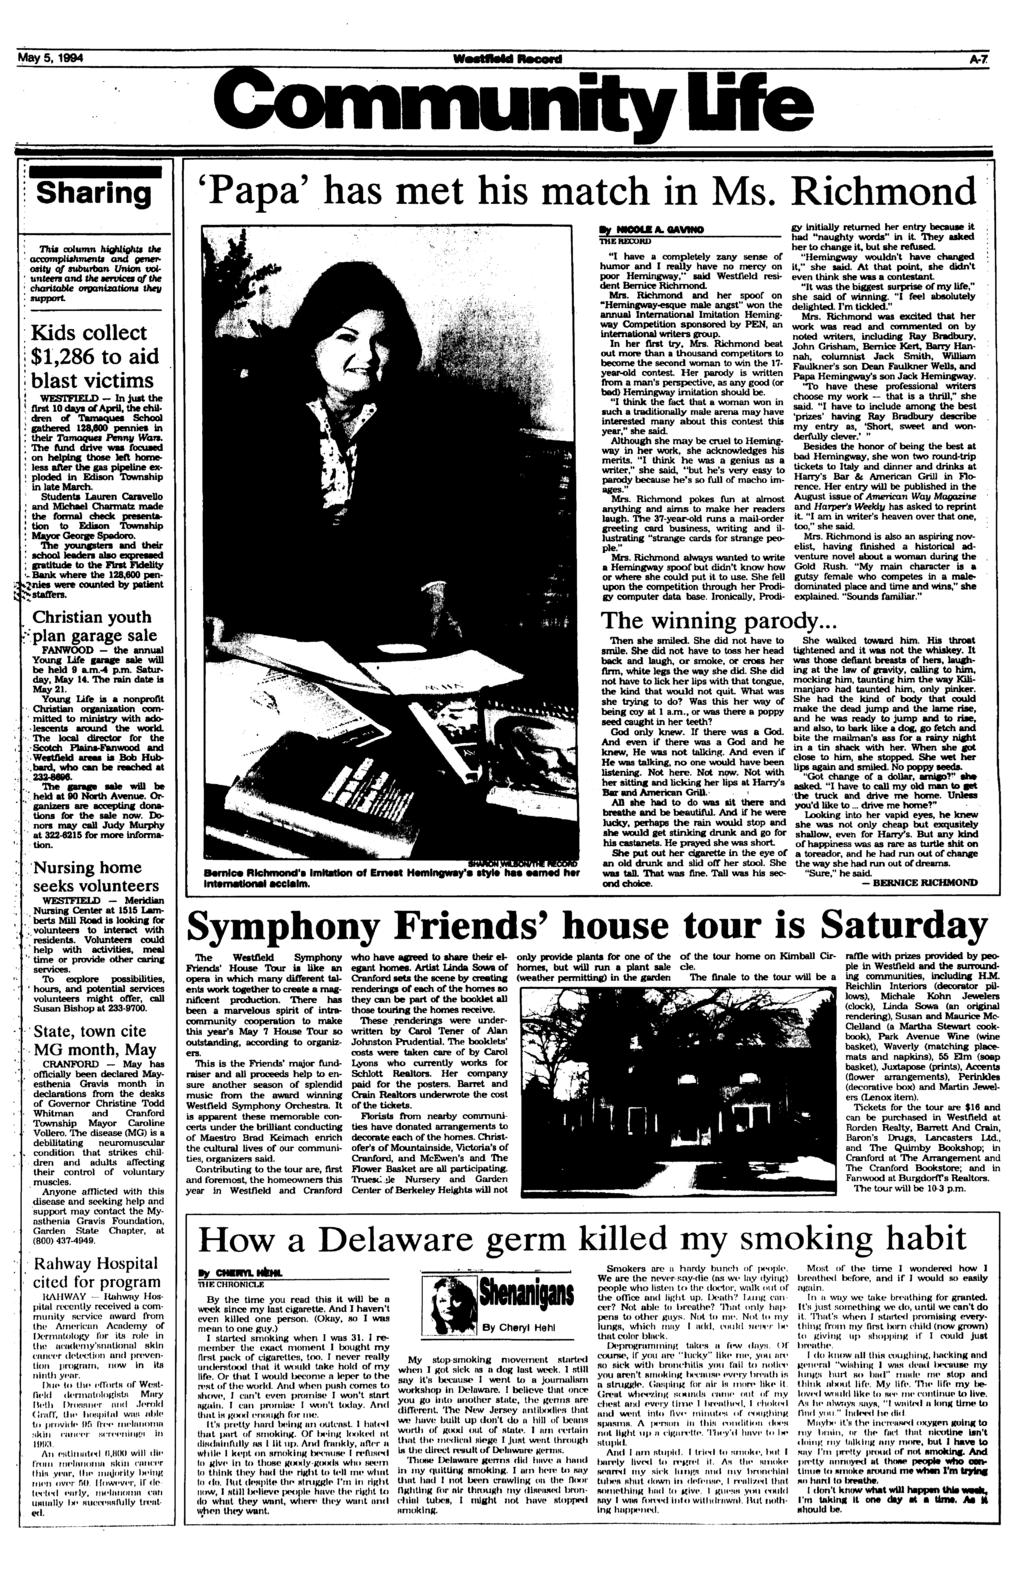 Thefestfield record pdf may 5 1994 community lite a 7 sharing this column highlights the accomplishment fandeluxe Images